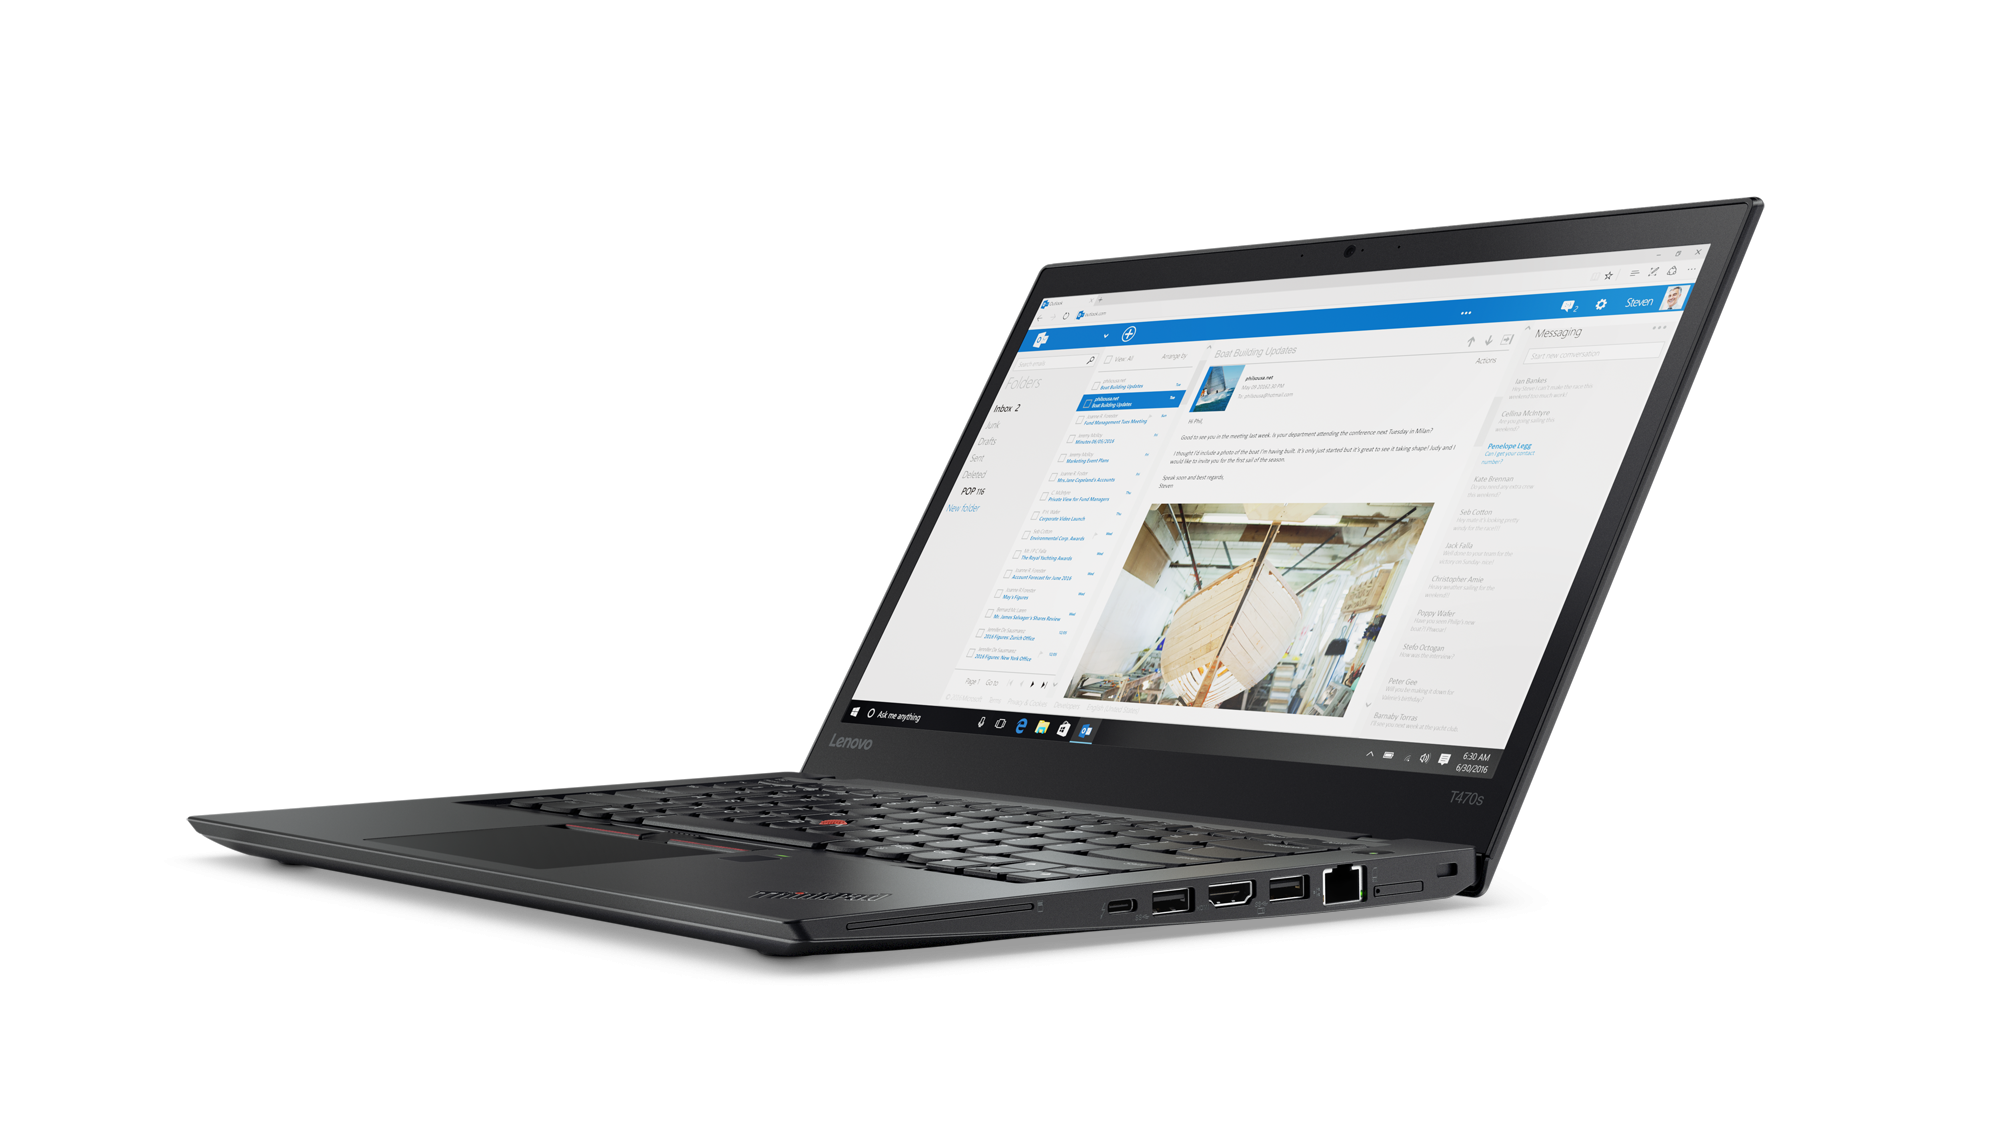 lenovo thinkpad rabatt